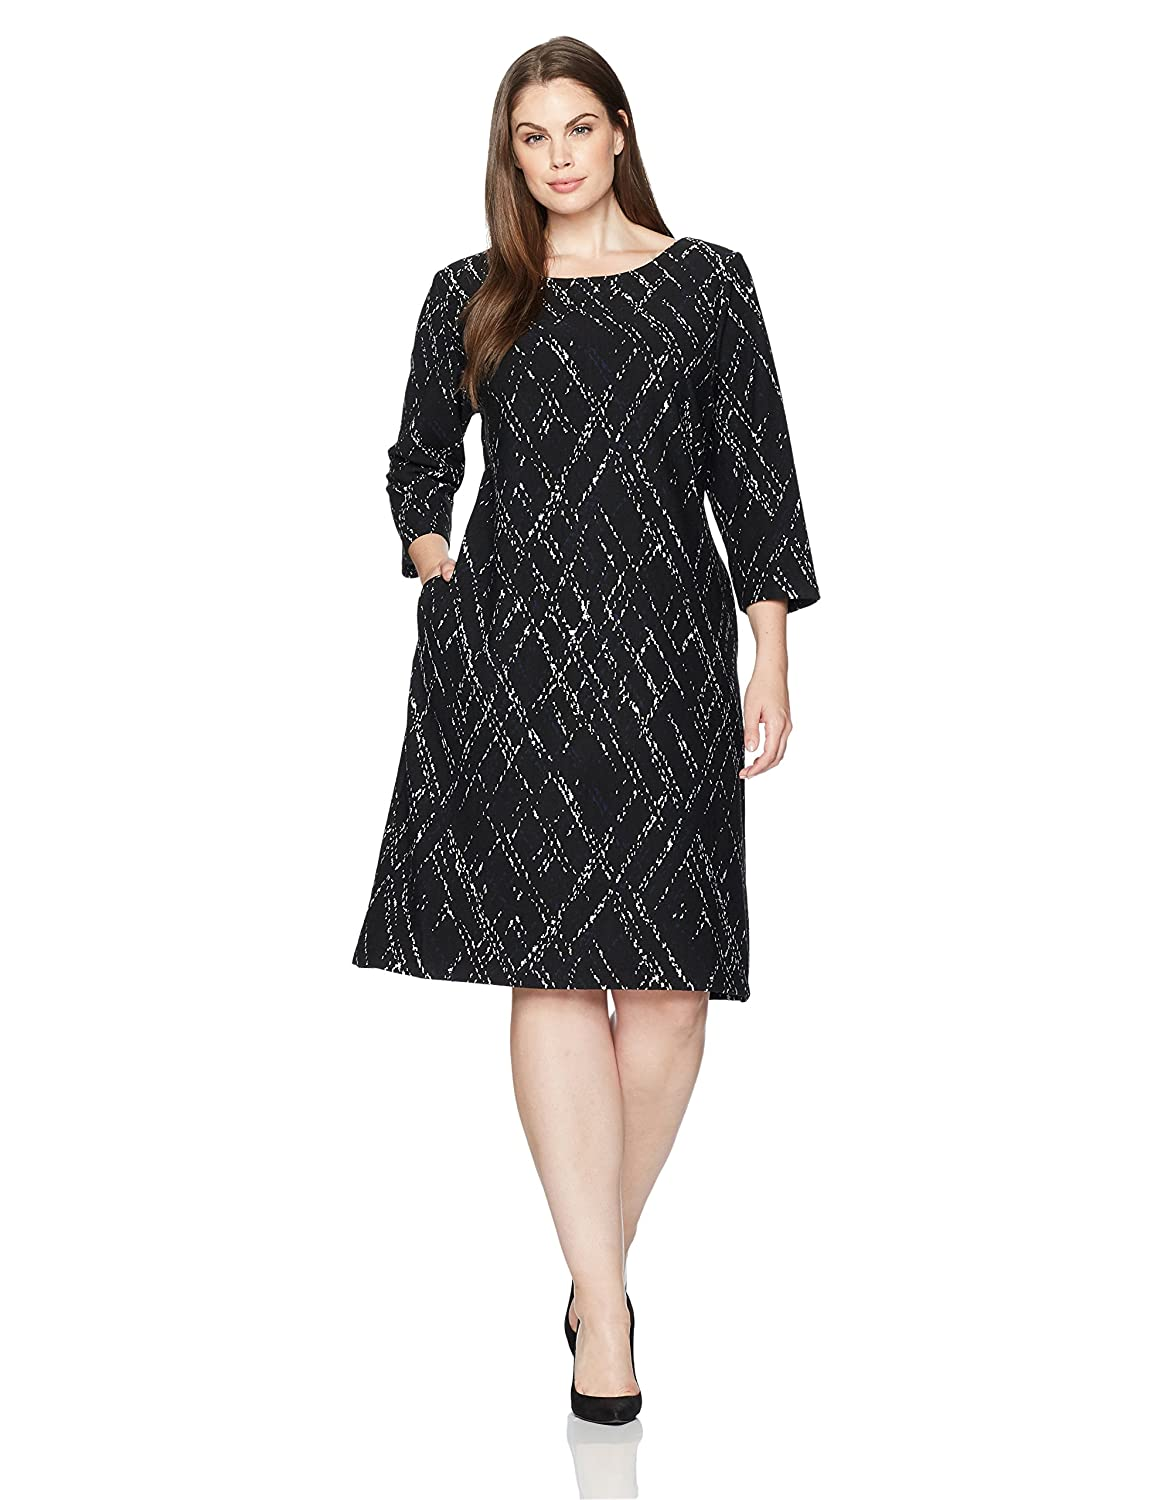 acdf43154ea7 Taylor Dresses Women s Plus Size Matchstick Print Novelty Jacquard Knit  Dress at Amazon Women s Clothing store